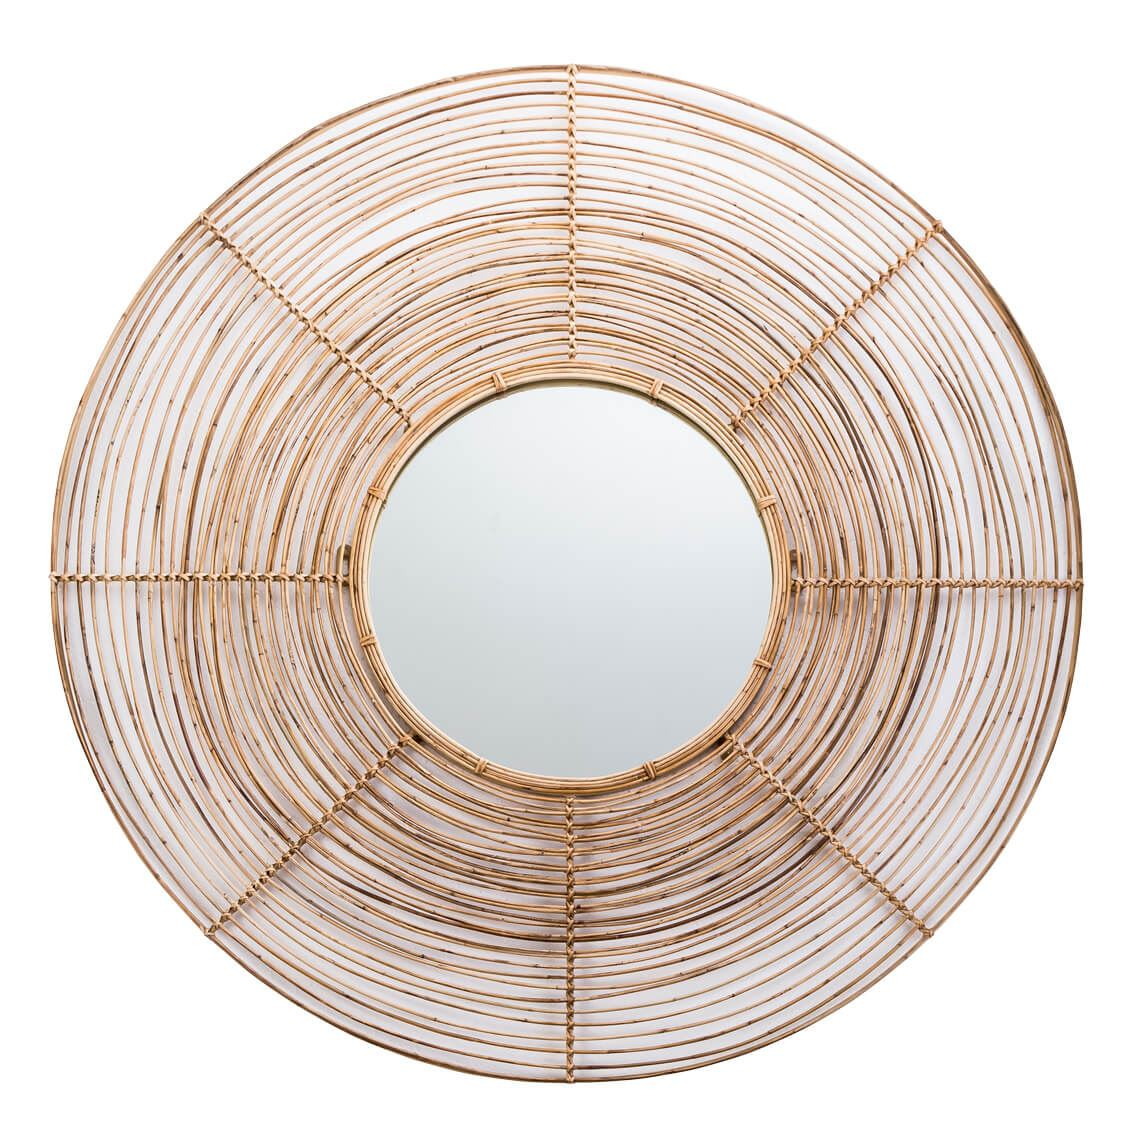 Bombo Mirror Size W 100cm x D 2cm x H 100cm in Natural Mirror/Arorog/Iron Freedom by Freedom, a Mirrors for sale on Style Sourcebook